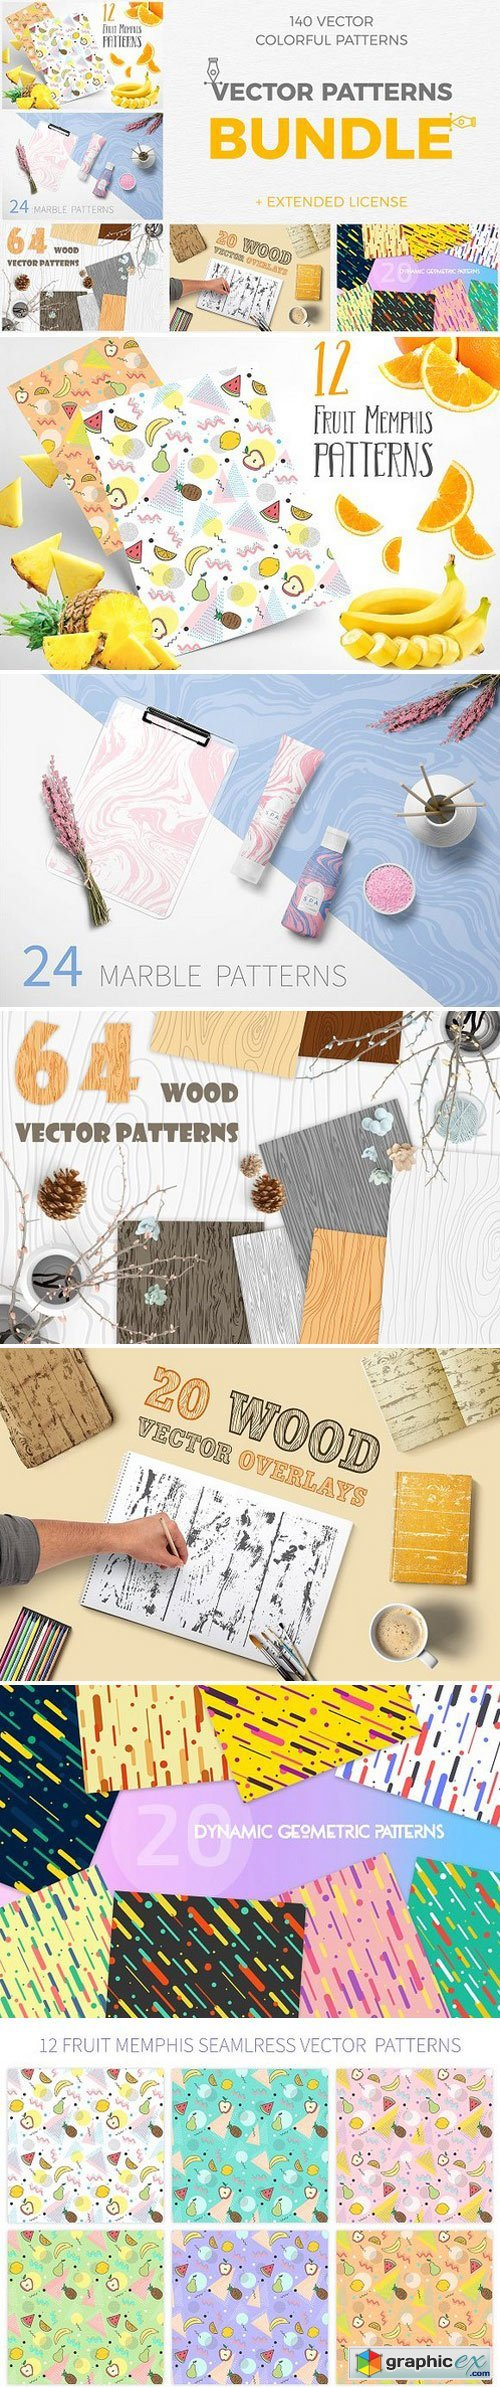 Vector Patterns Great Bundle 5 in 1